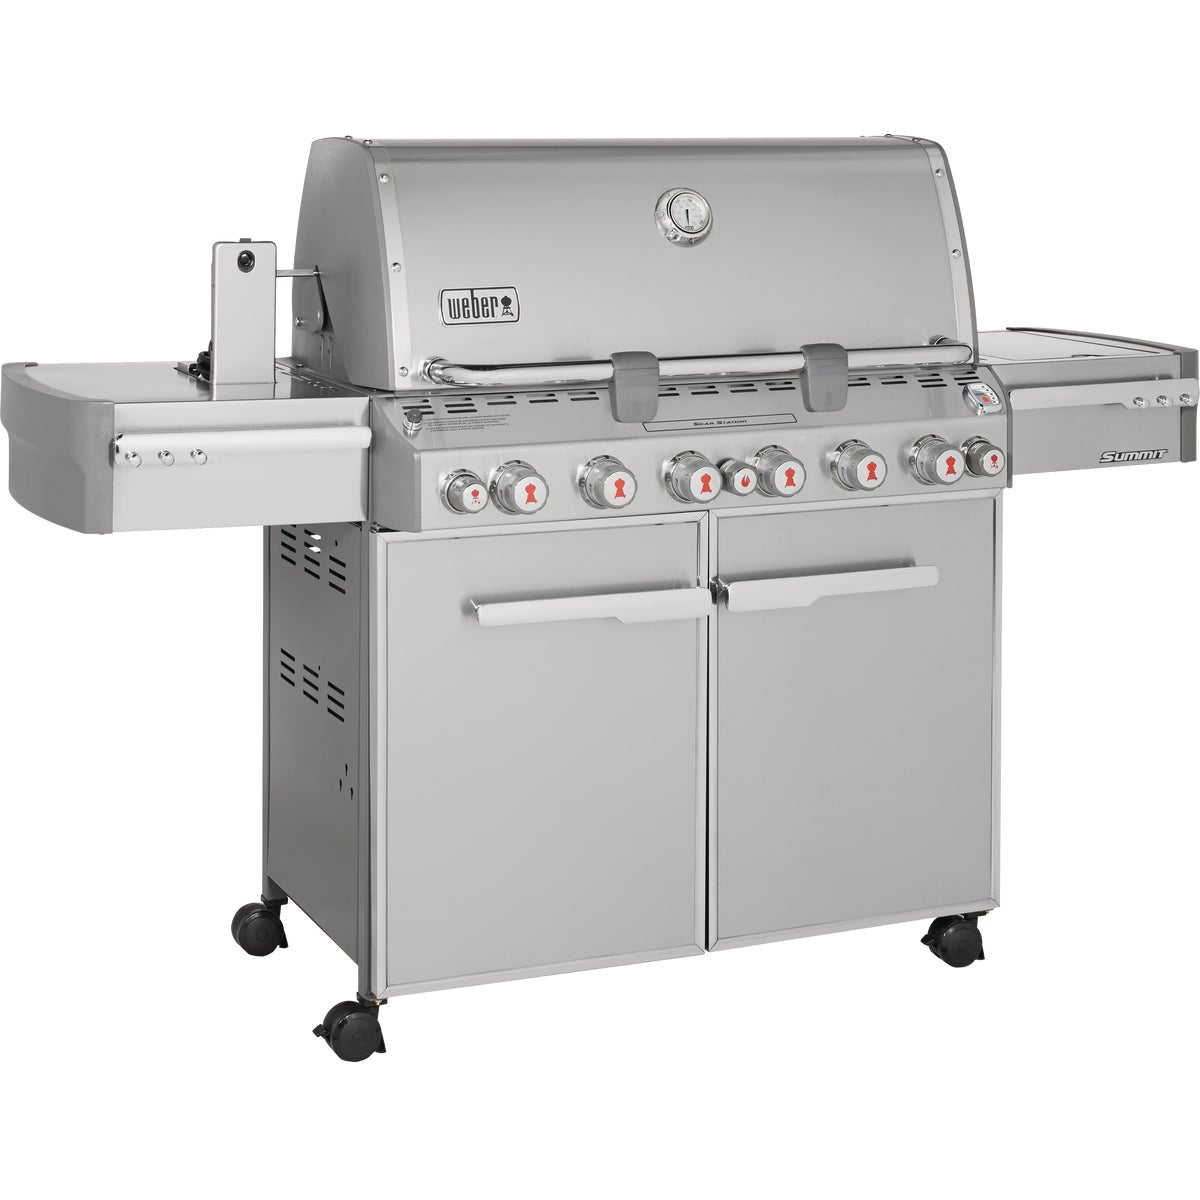 S-670 SS SUMMIT GRILL - 7370001 by Weber